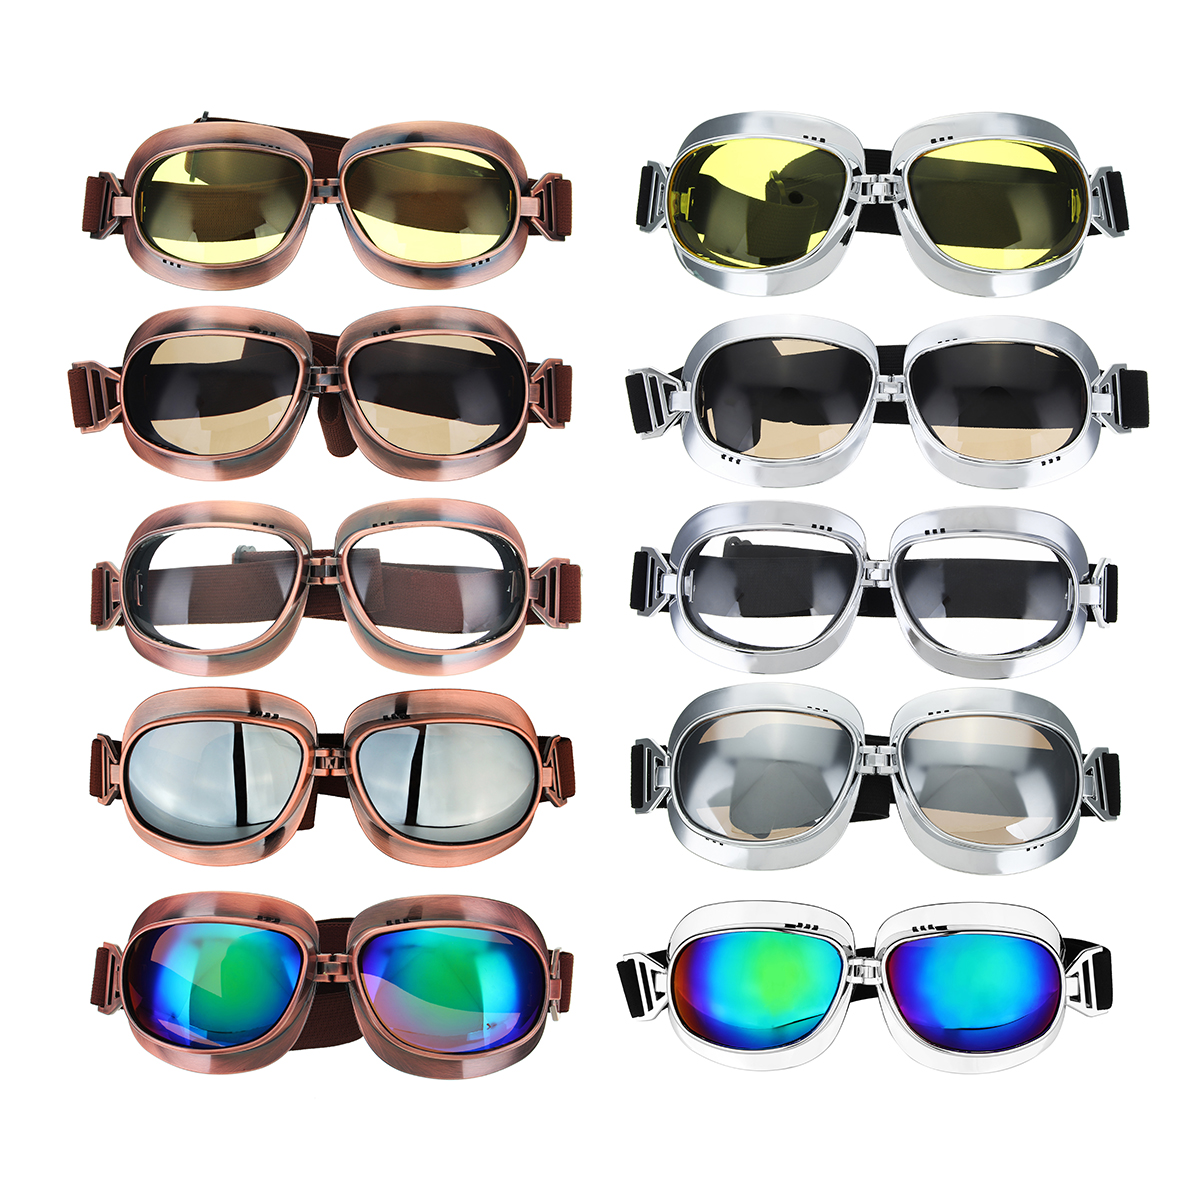 Retro Motorcycle Goggles Vintage Windproof Riding Glasses Silver/Bronze Frame